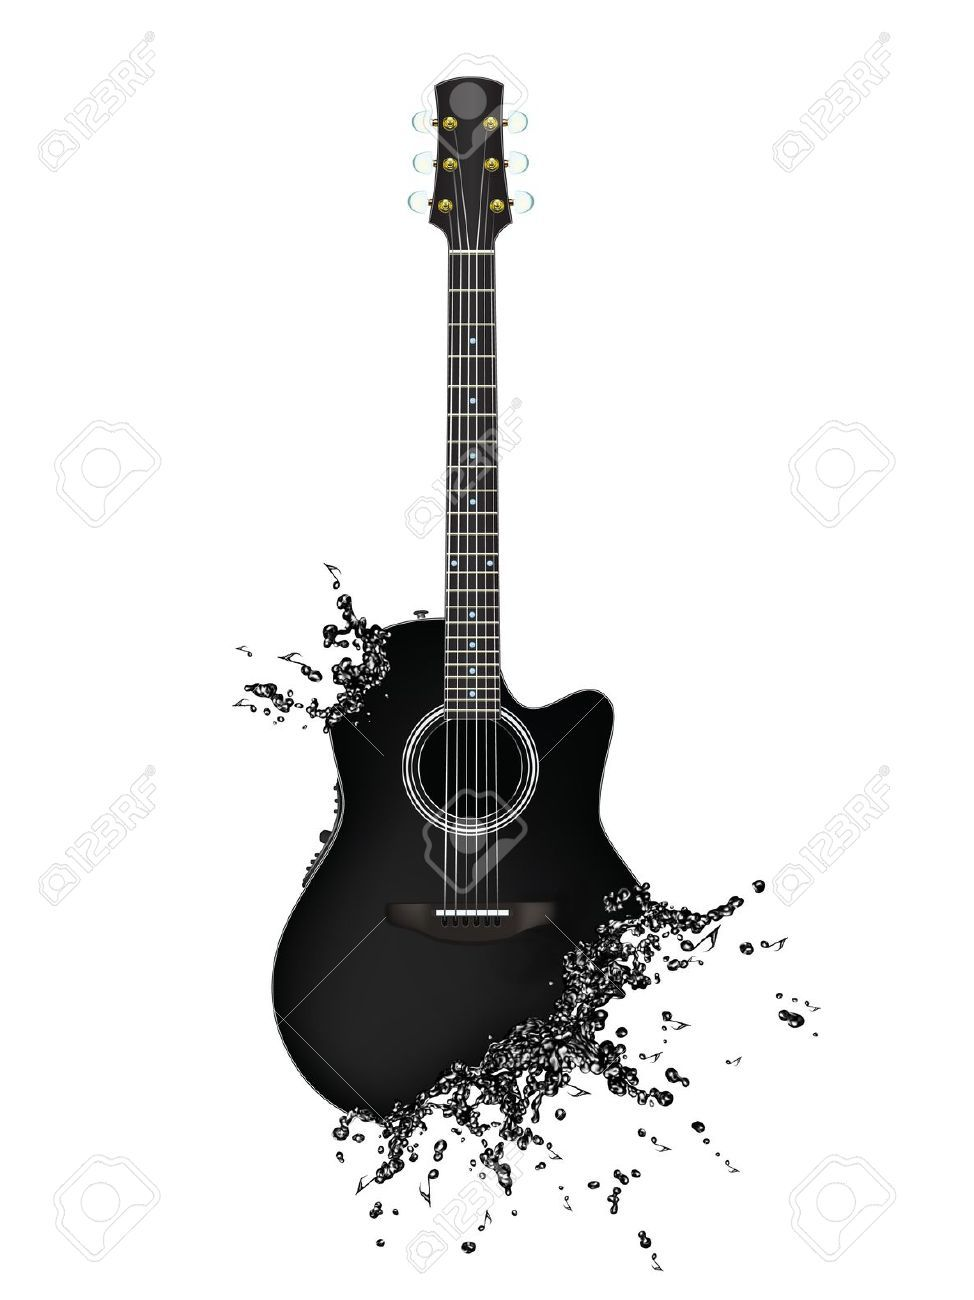 Guitar Silhouette Google Search Guitar Art Music Artwork Guitar Tattoo